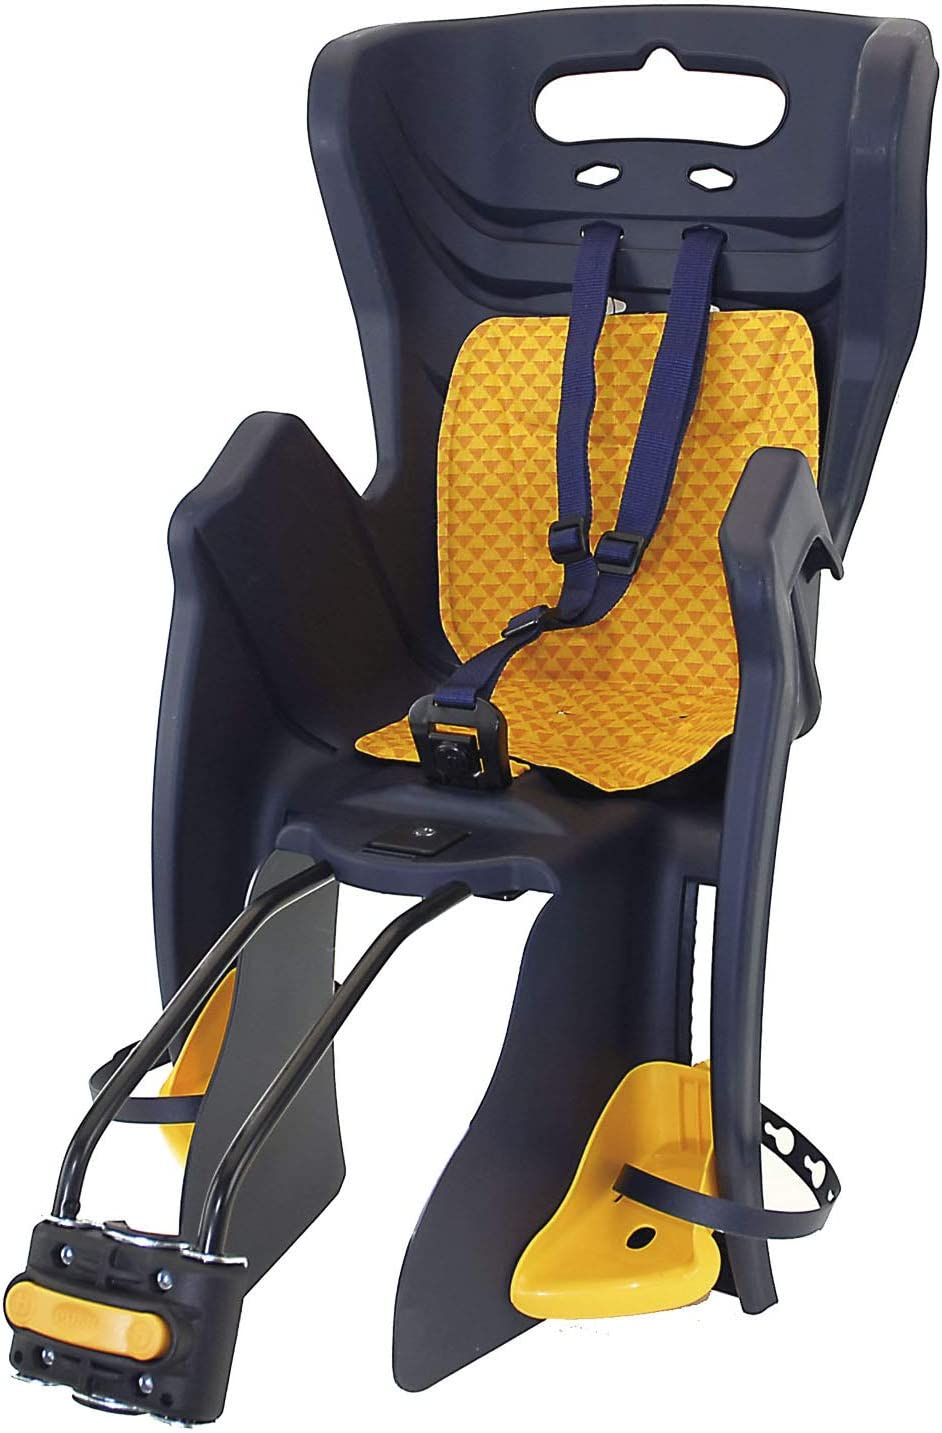 Kids Rear Baby Seat - Blue/Yellow by Unknown